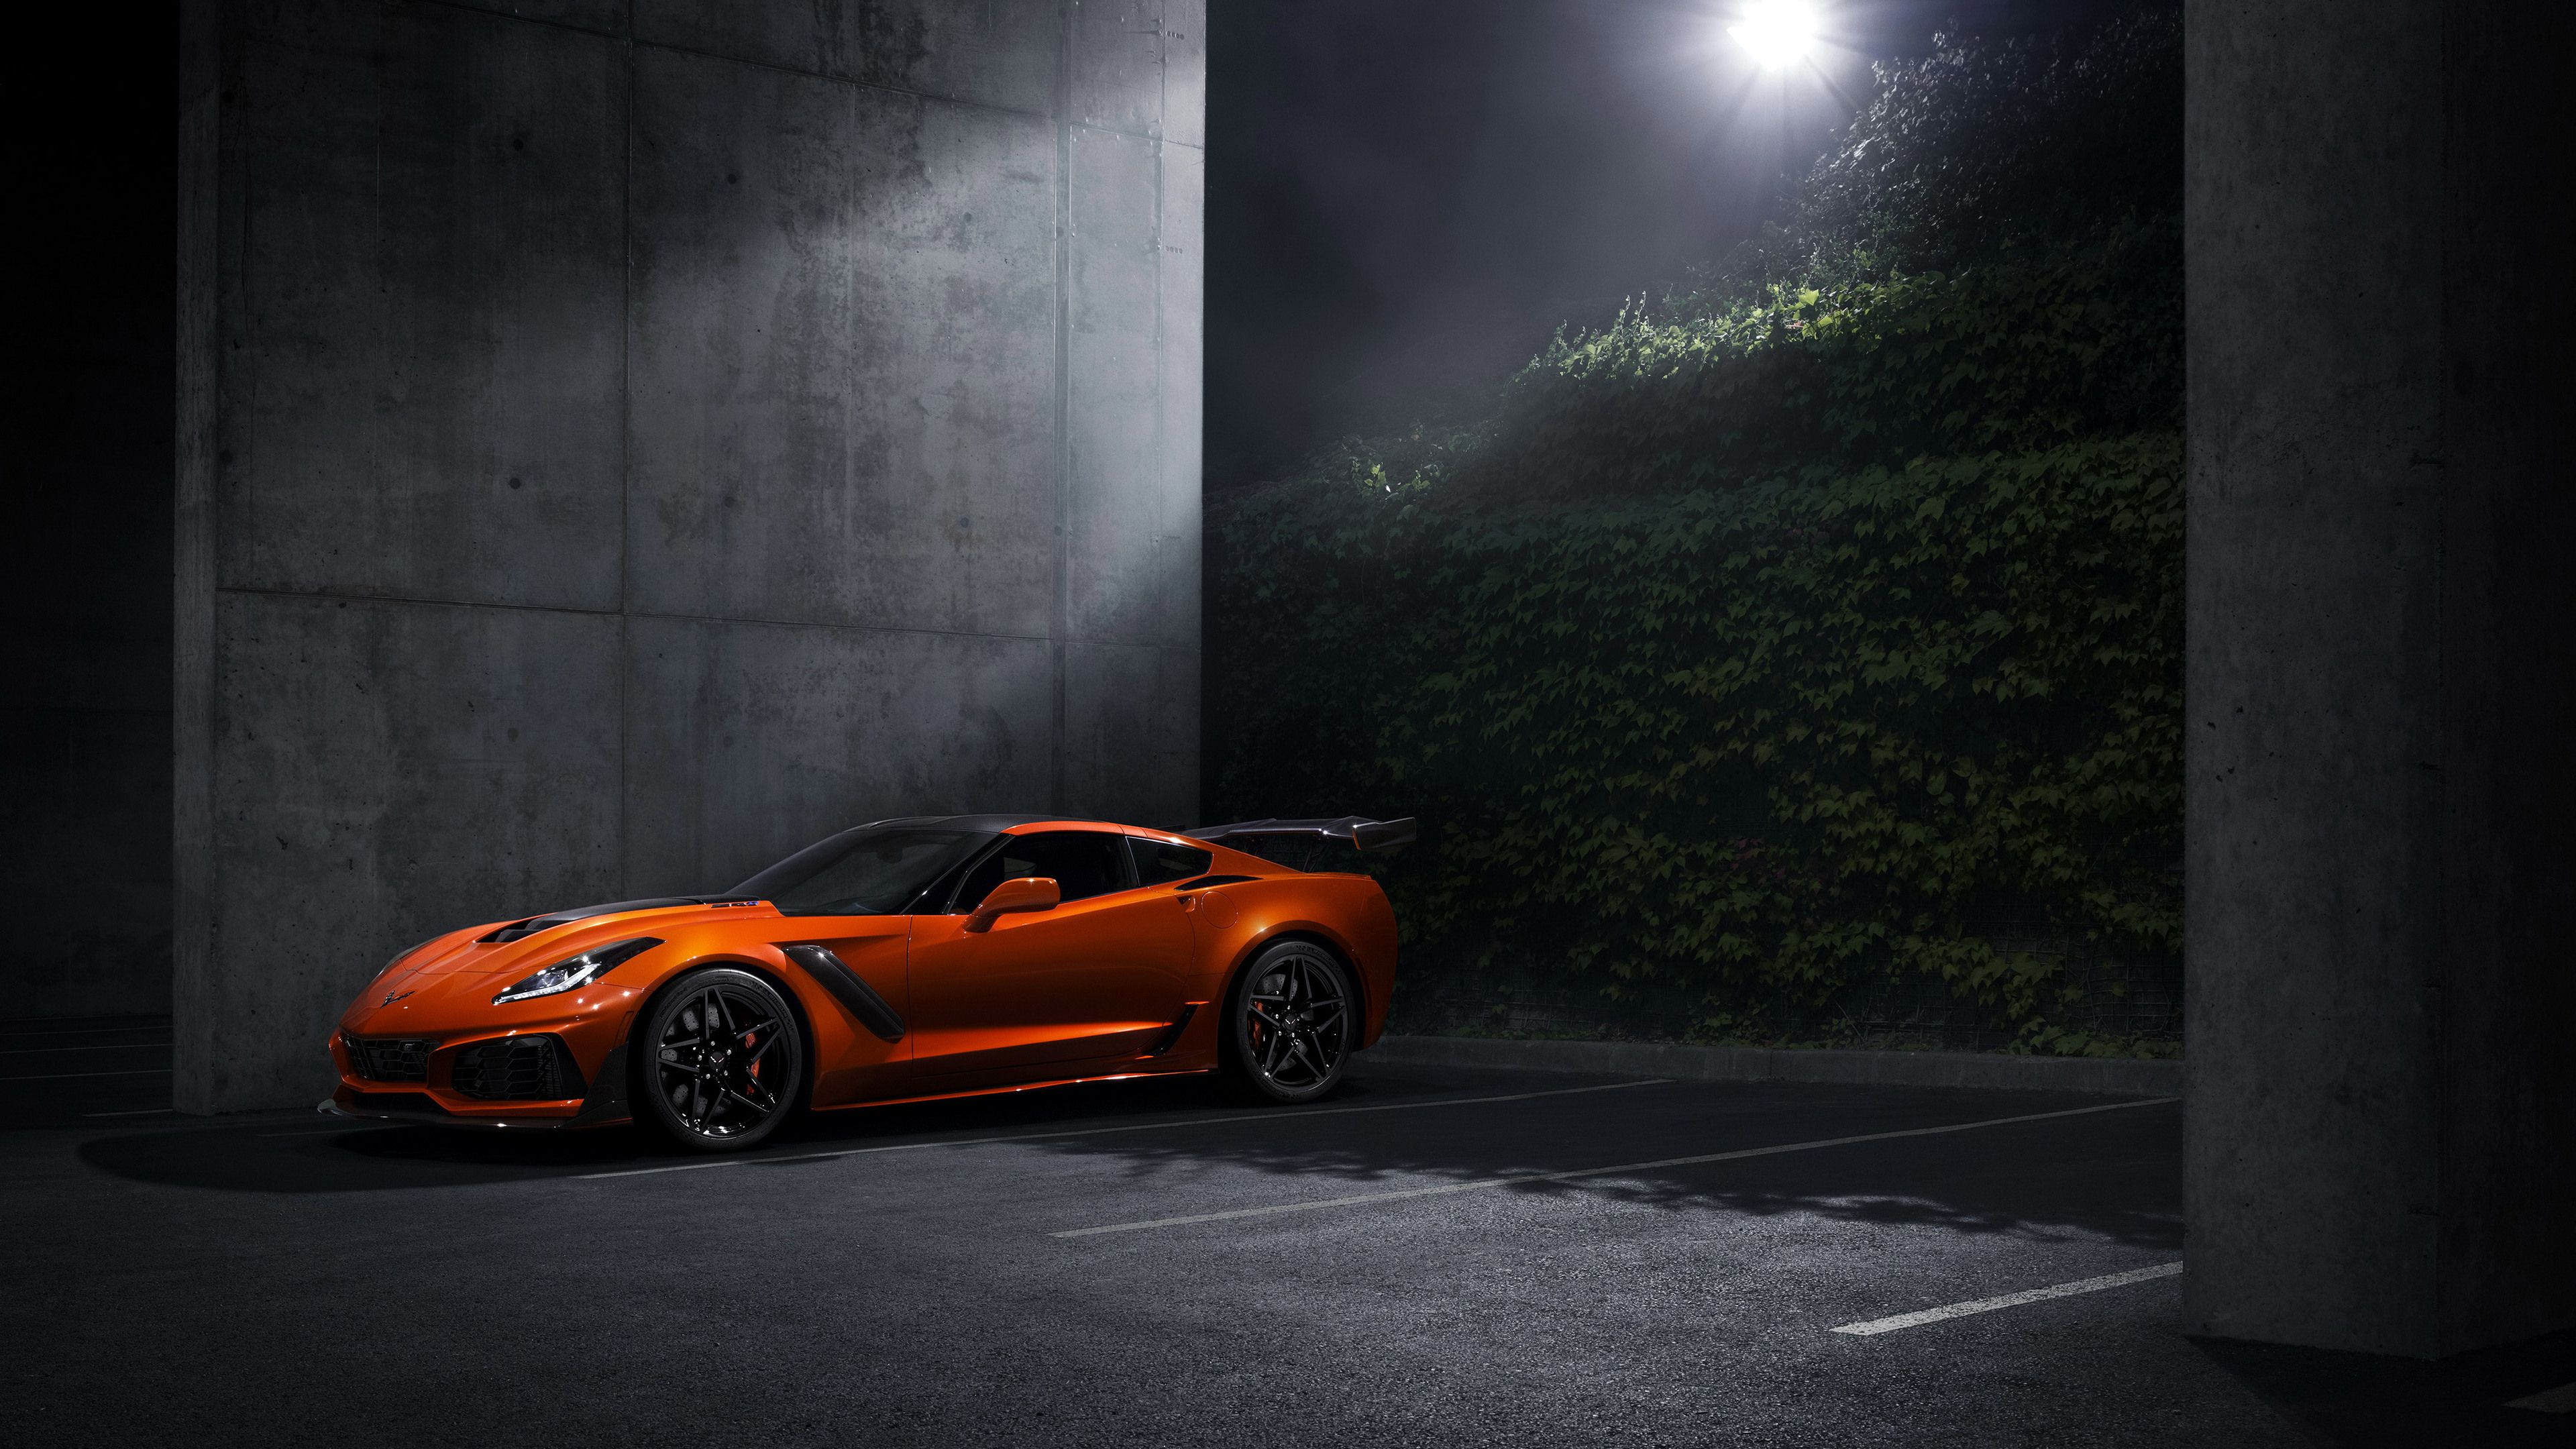 2019 Chevrolet Corvette Zr1 Hd Wallpapers Corvette Wallpapers Chevrolet Wallpapers Chevrolet Corvette Zr1 Wallpaper Corvette Zr1 Chevrolet Corvette Corvette